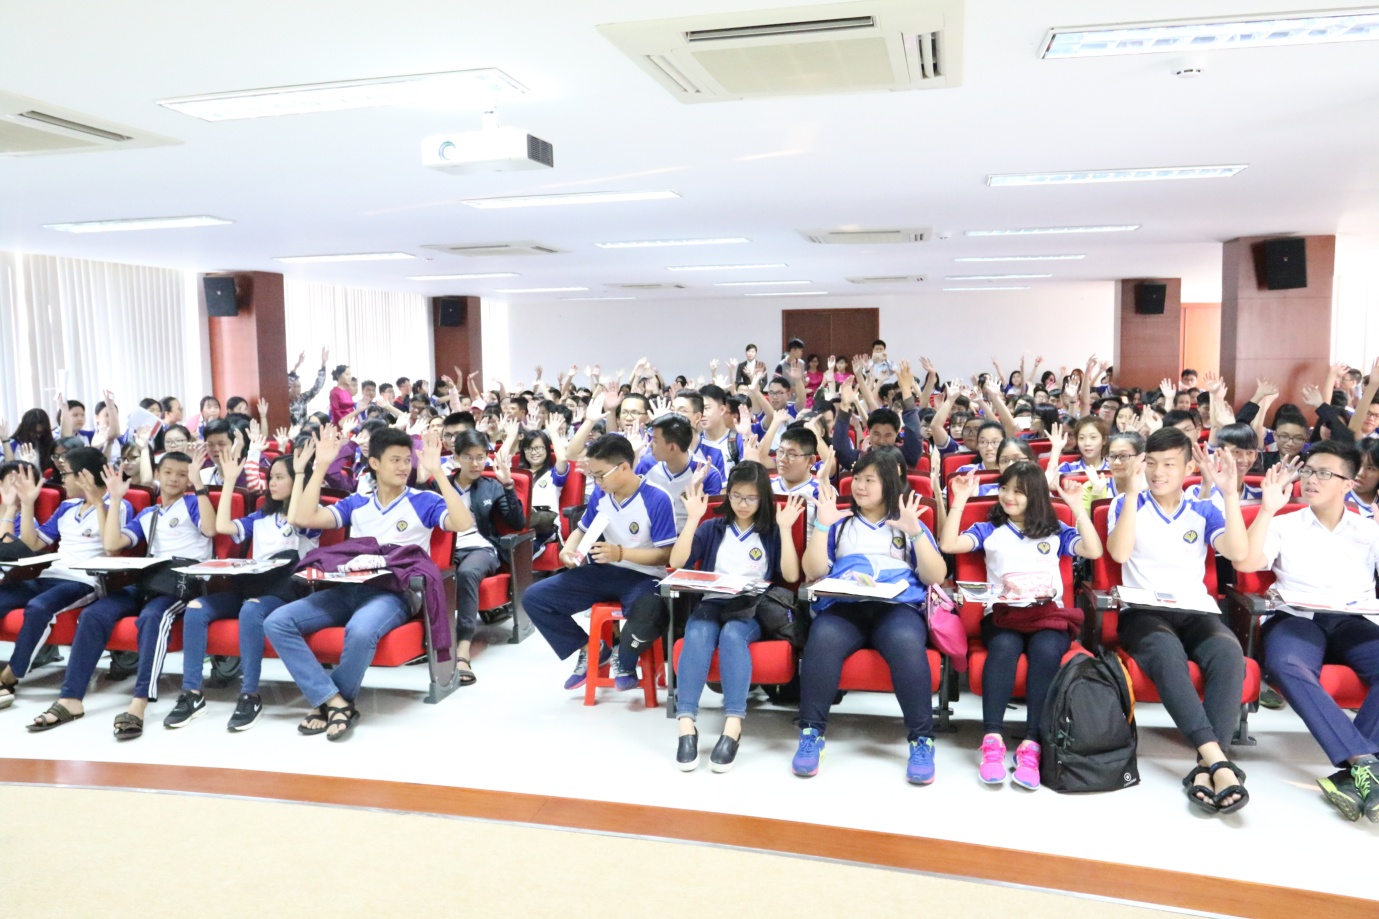 Thousands of parents and students experience SIU Open Day at The Saigon International University